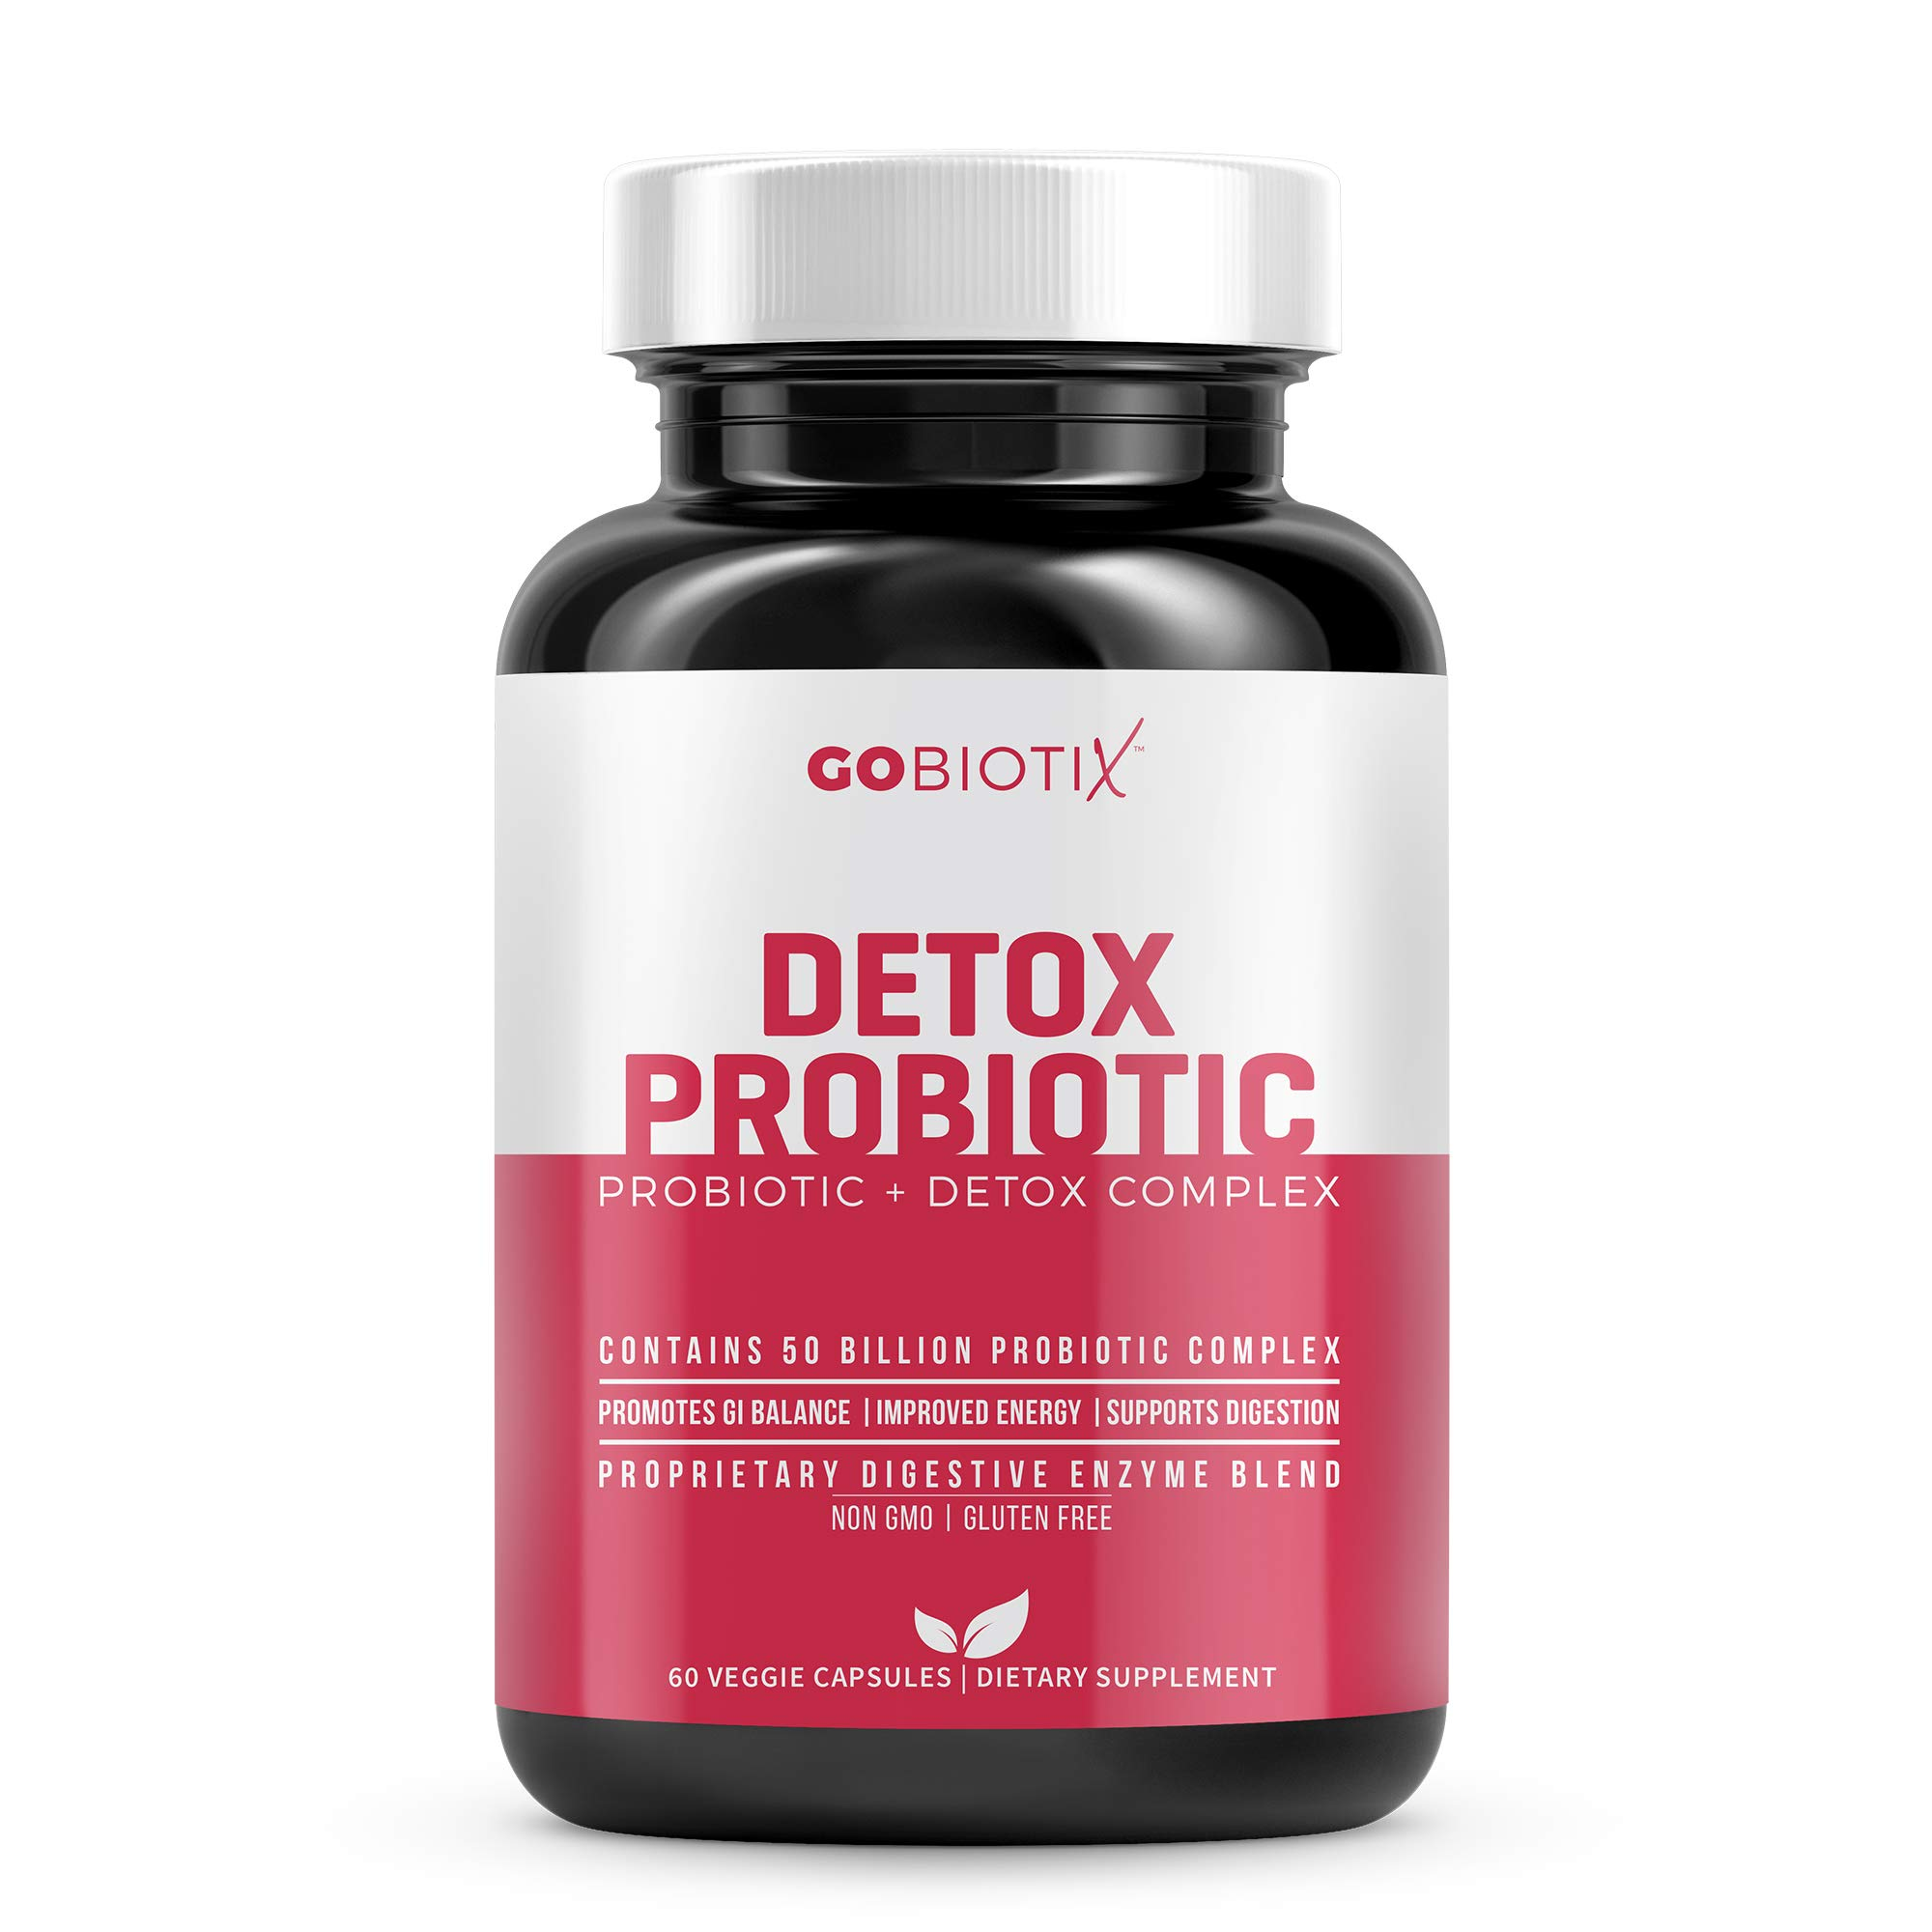 GoBiotix Detox Probiotic | 50 Billion CFU of Probiotics with Prebiotics and Digestive Enzymes to Promote Gut and Liver Health | Ultimate Flora Probiotic for Women and Men | Shelf Stable, 60 Vegan Caps